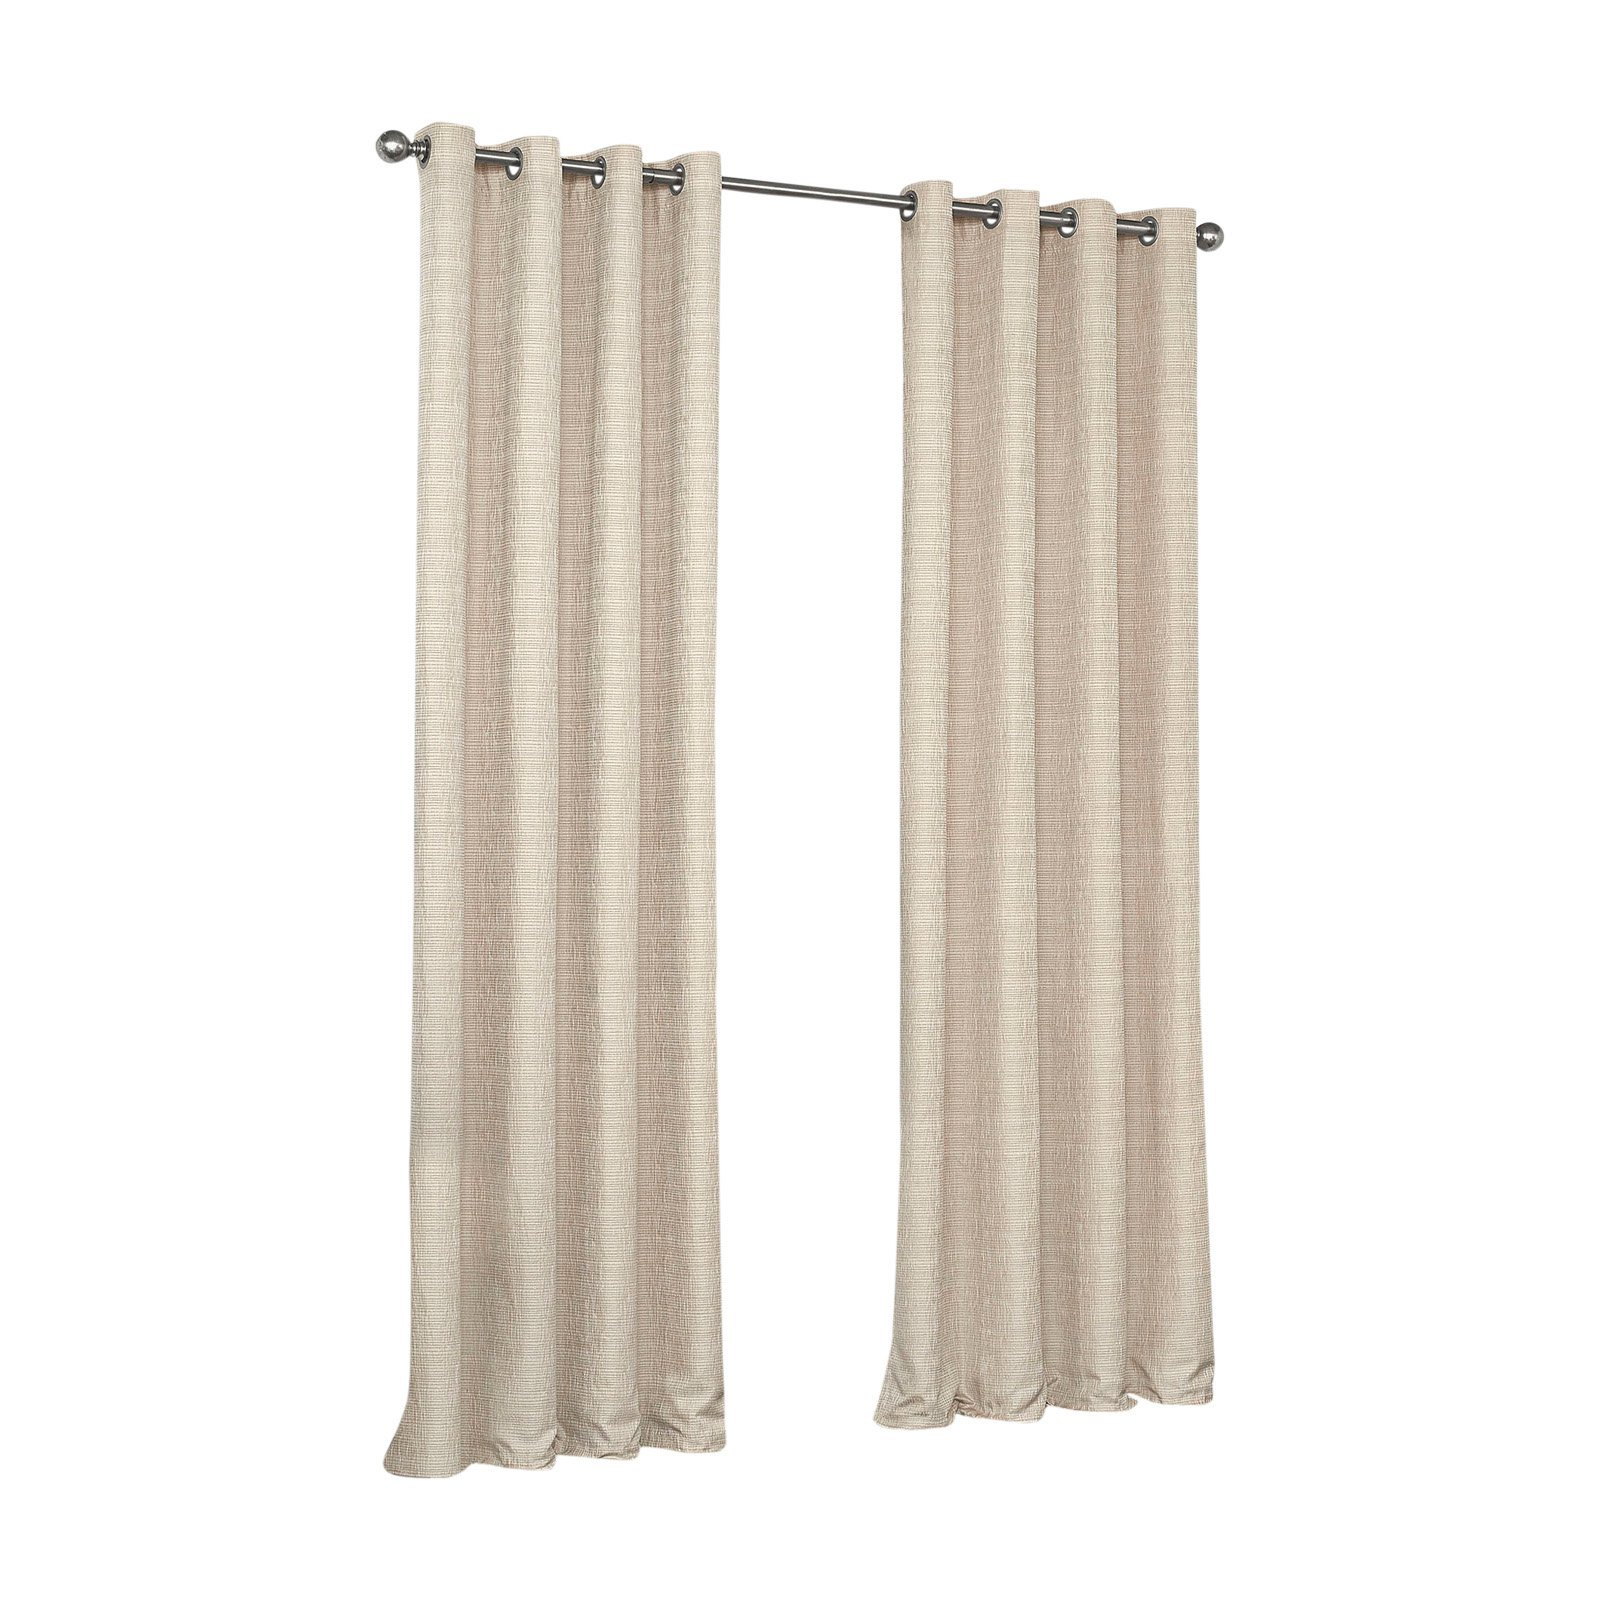 Eclipse Trevi Blackout Grommet Curtain Inside Eclipse Trevi Blackout Grommet Window Curtain Panels (View 8 of 20)